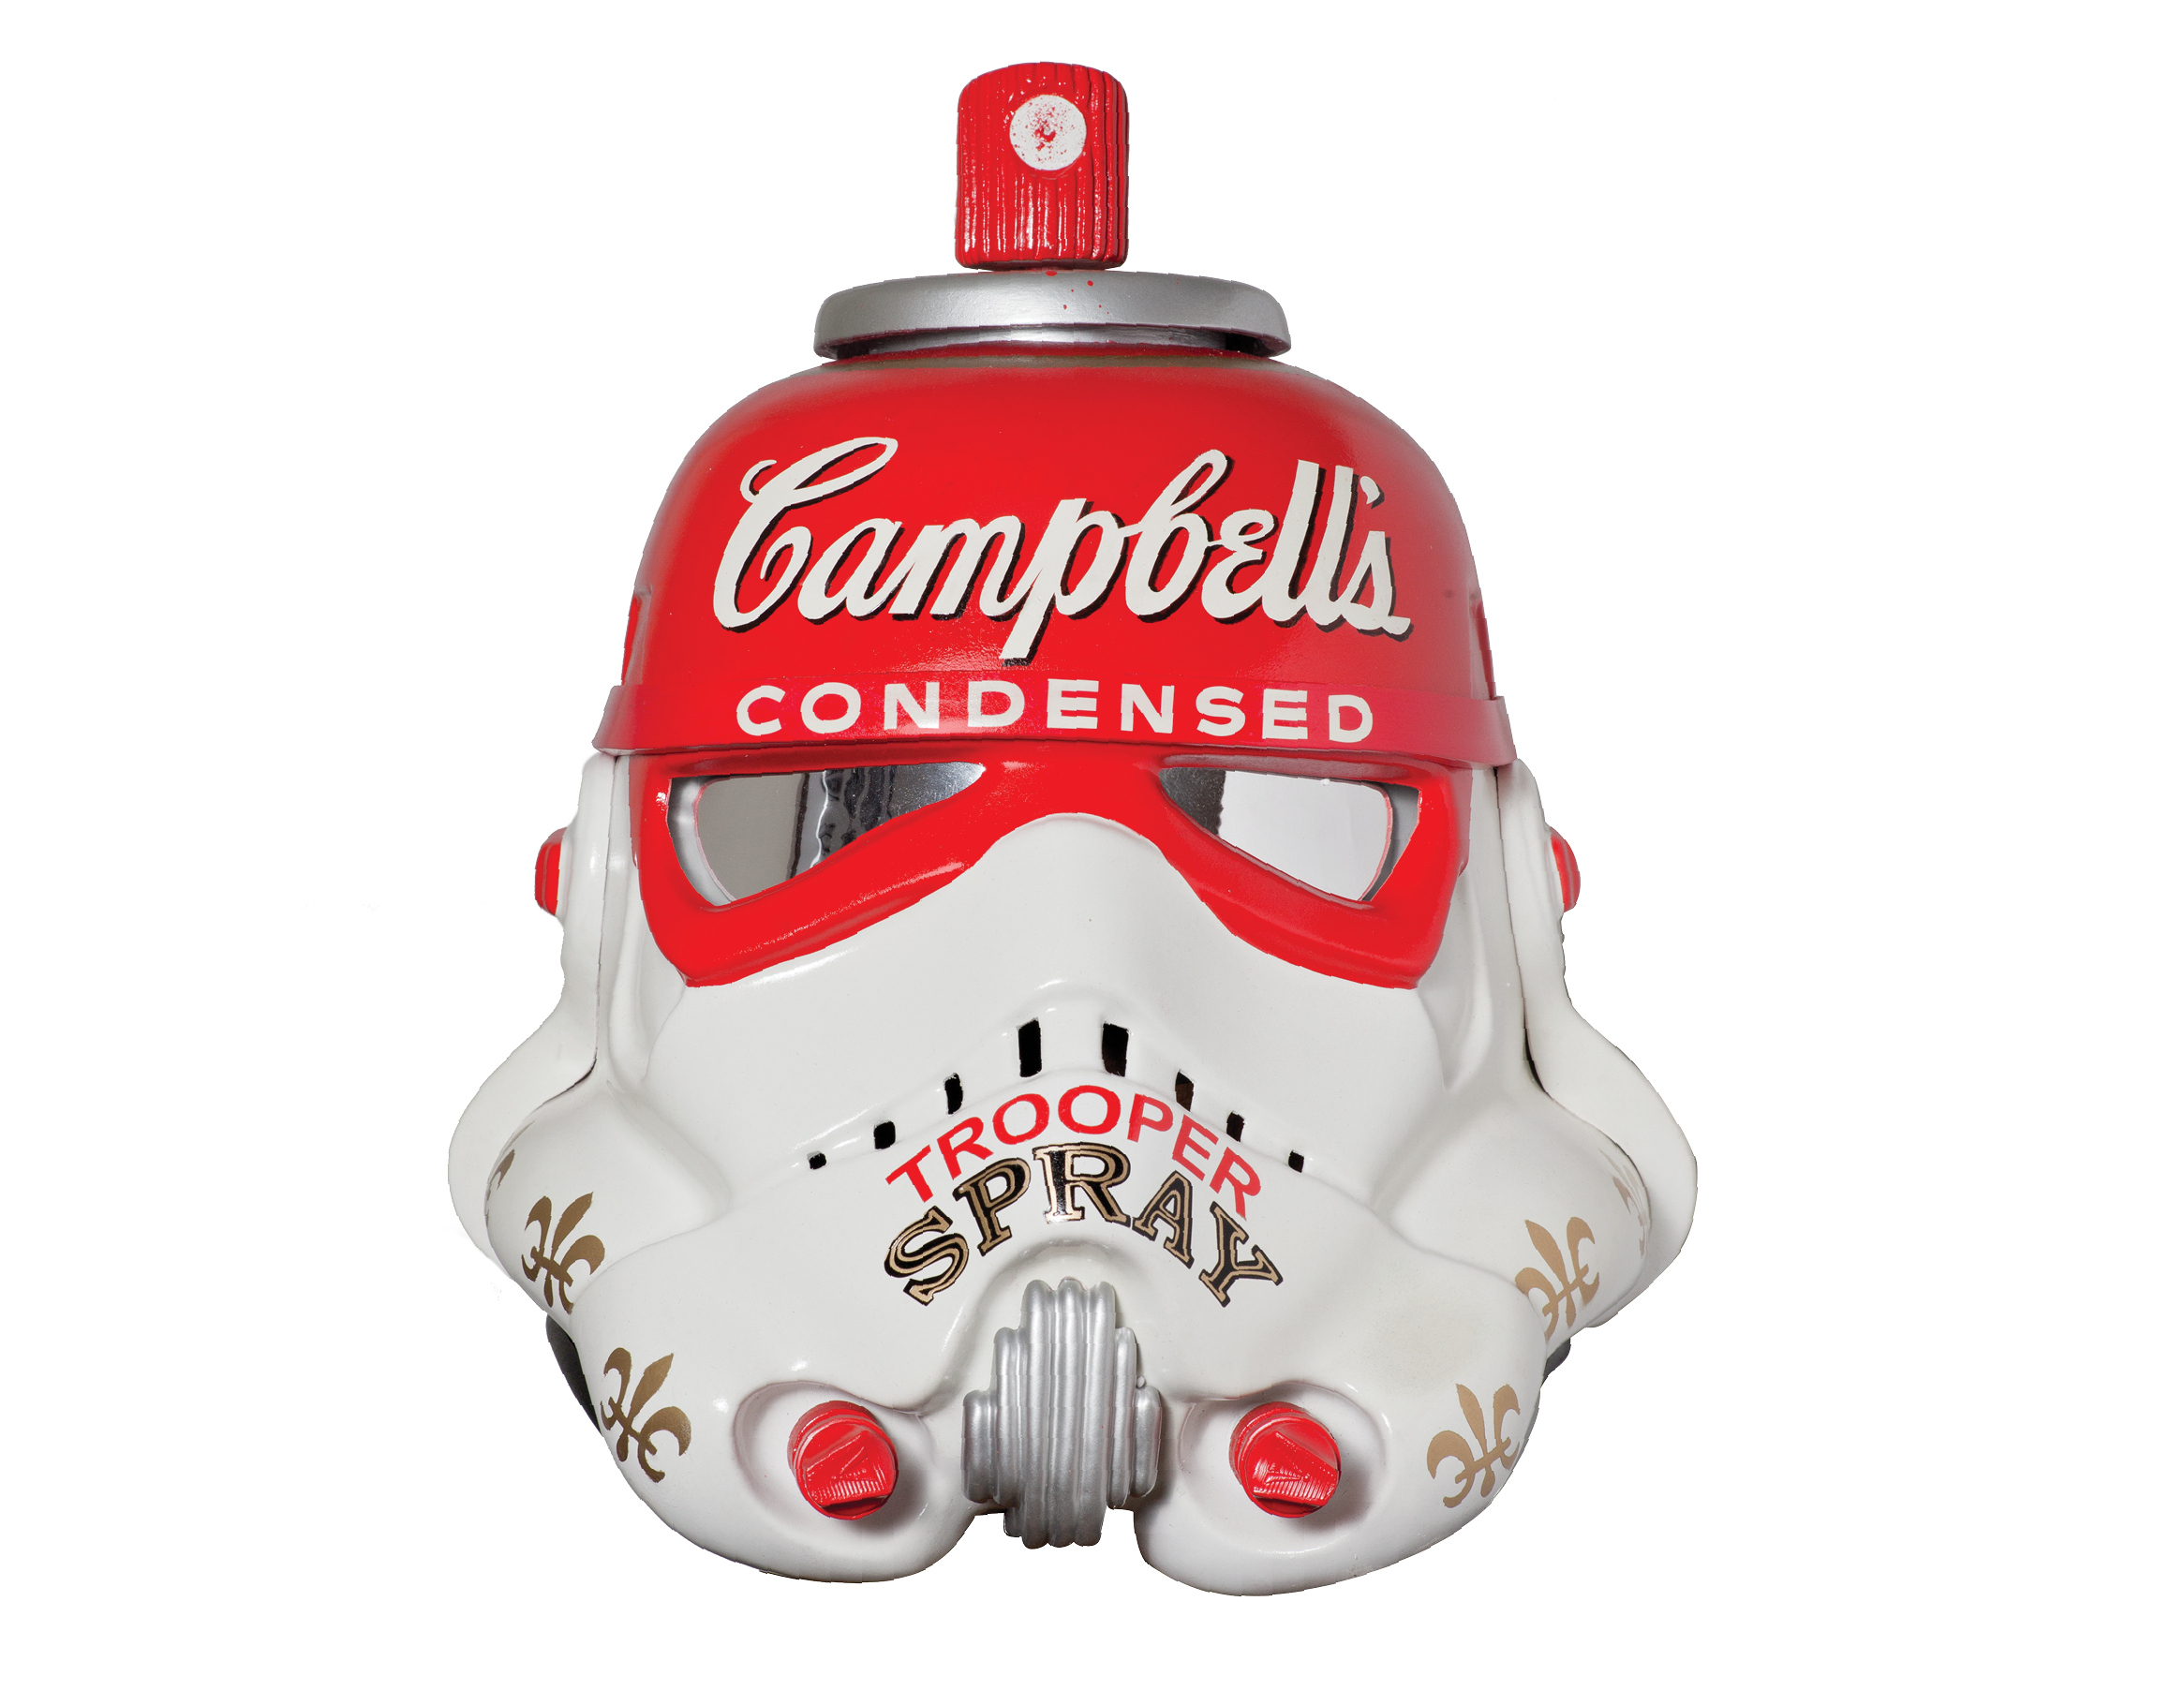 Stormtrooper gets Andy Warhol treatment